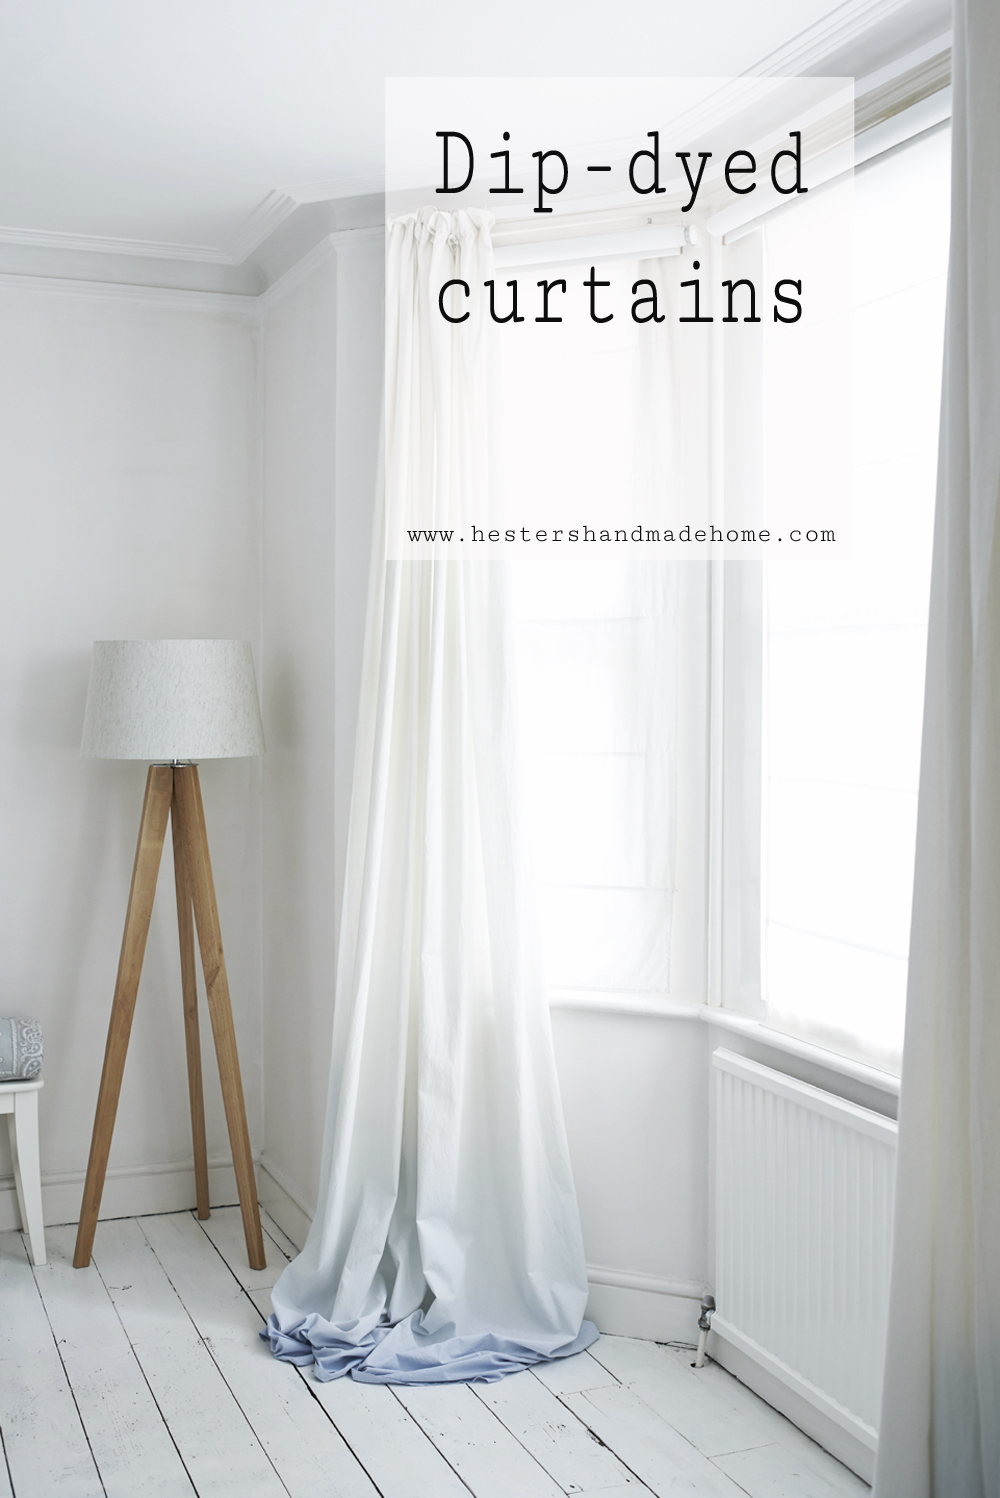 Dip dyed curtain, projects from the Furniture Hacks book by Hester van Overbeek